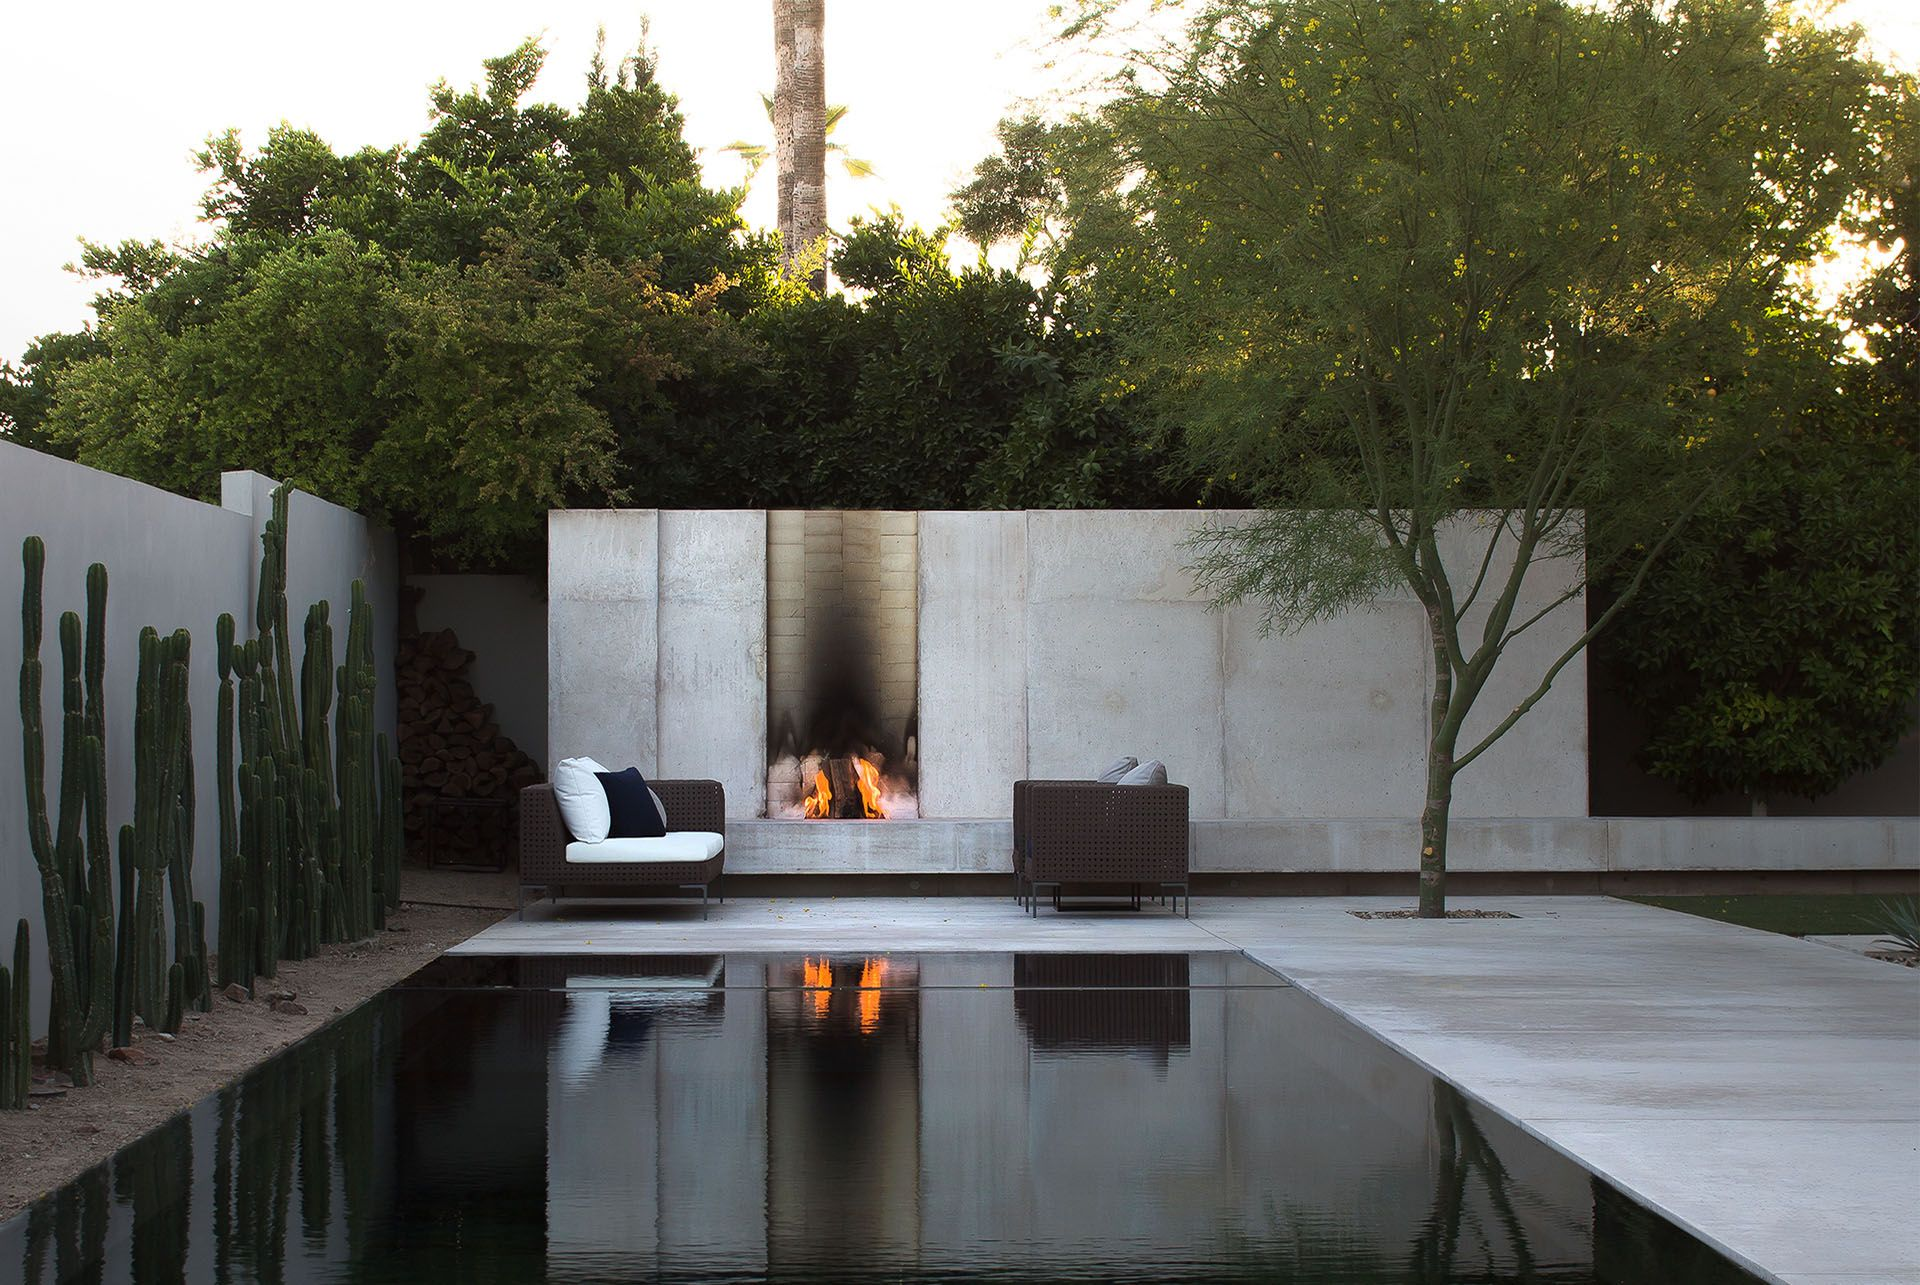 Minimalist design landscape art architecture full imagas for Classic minimalist house design